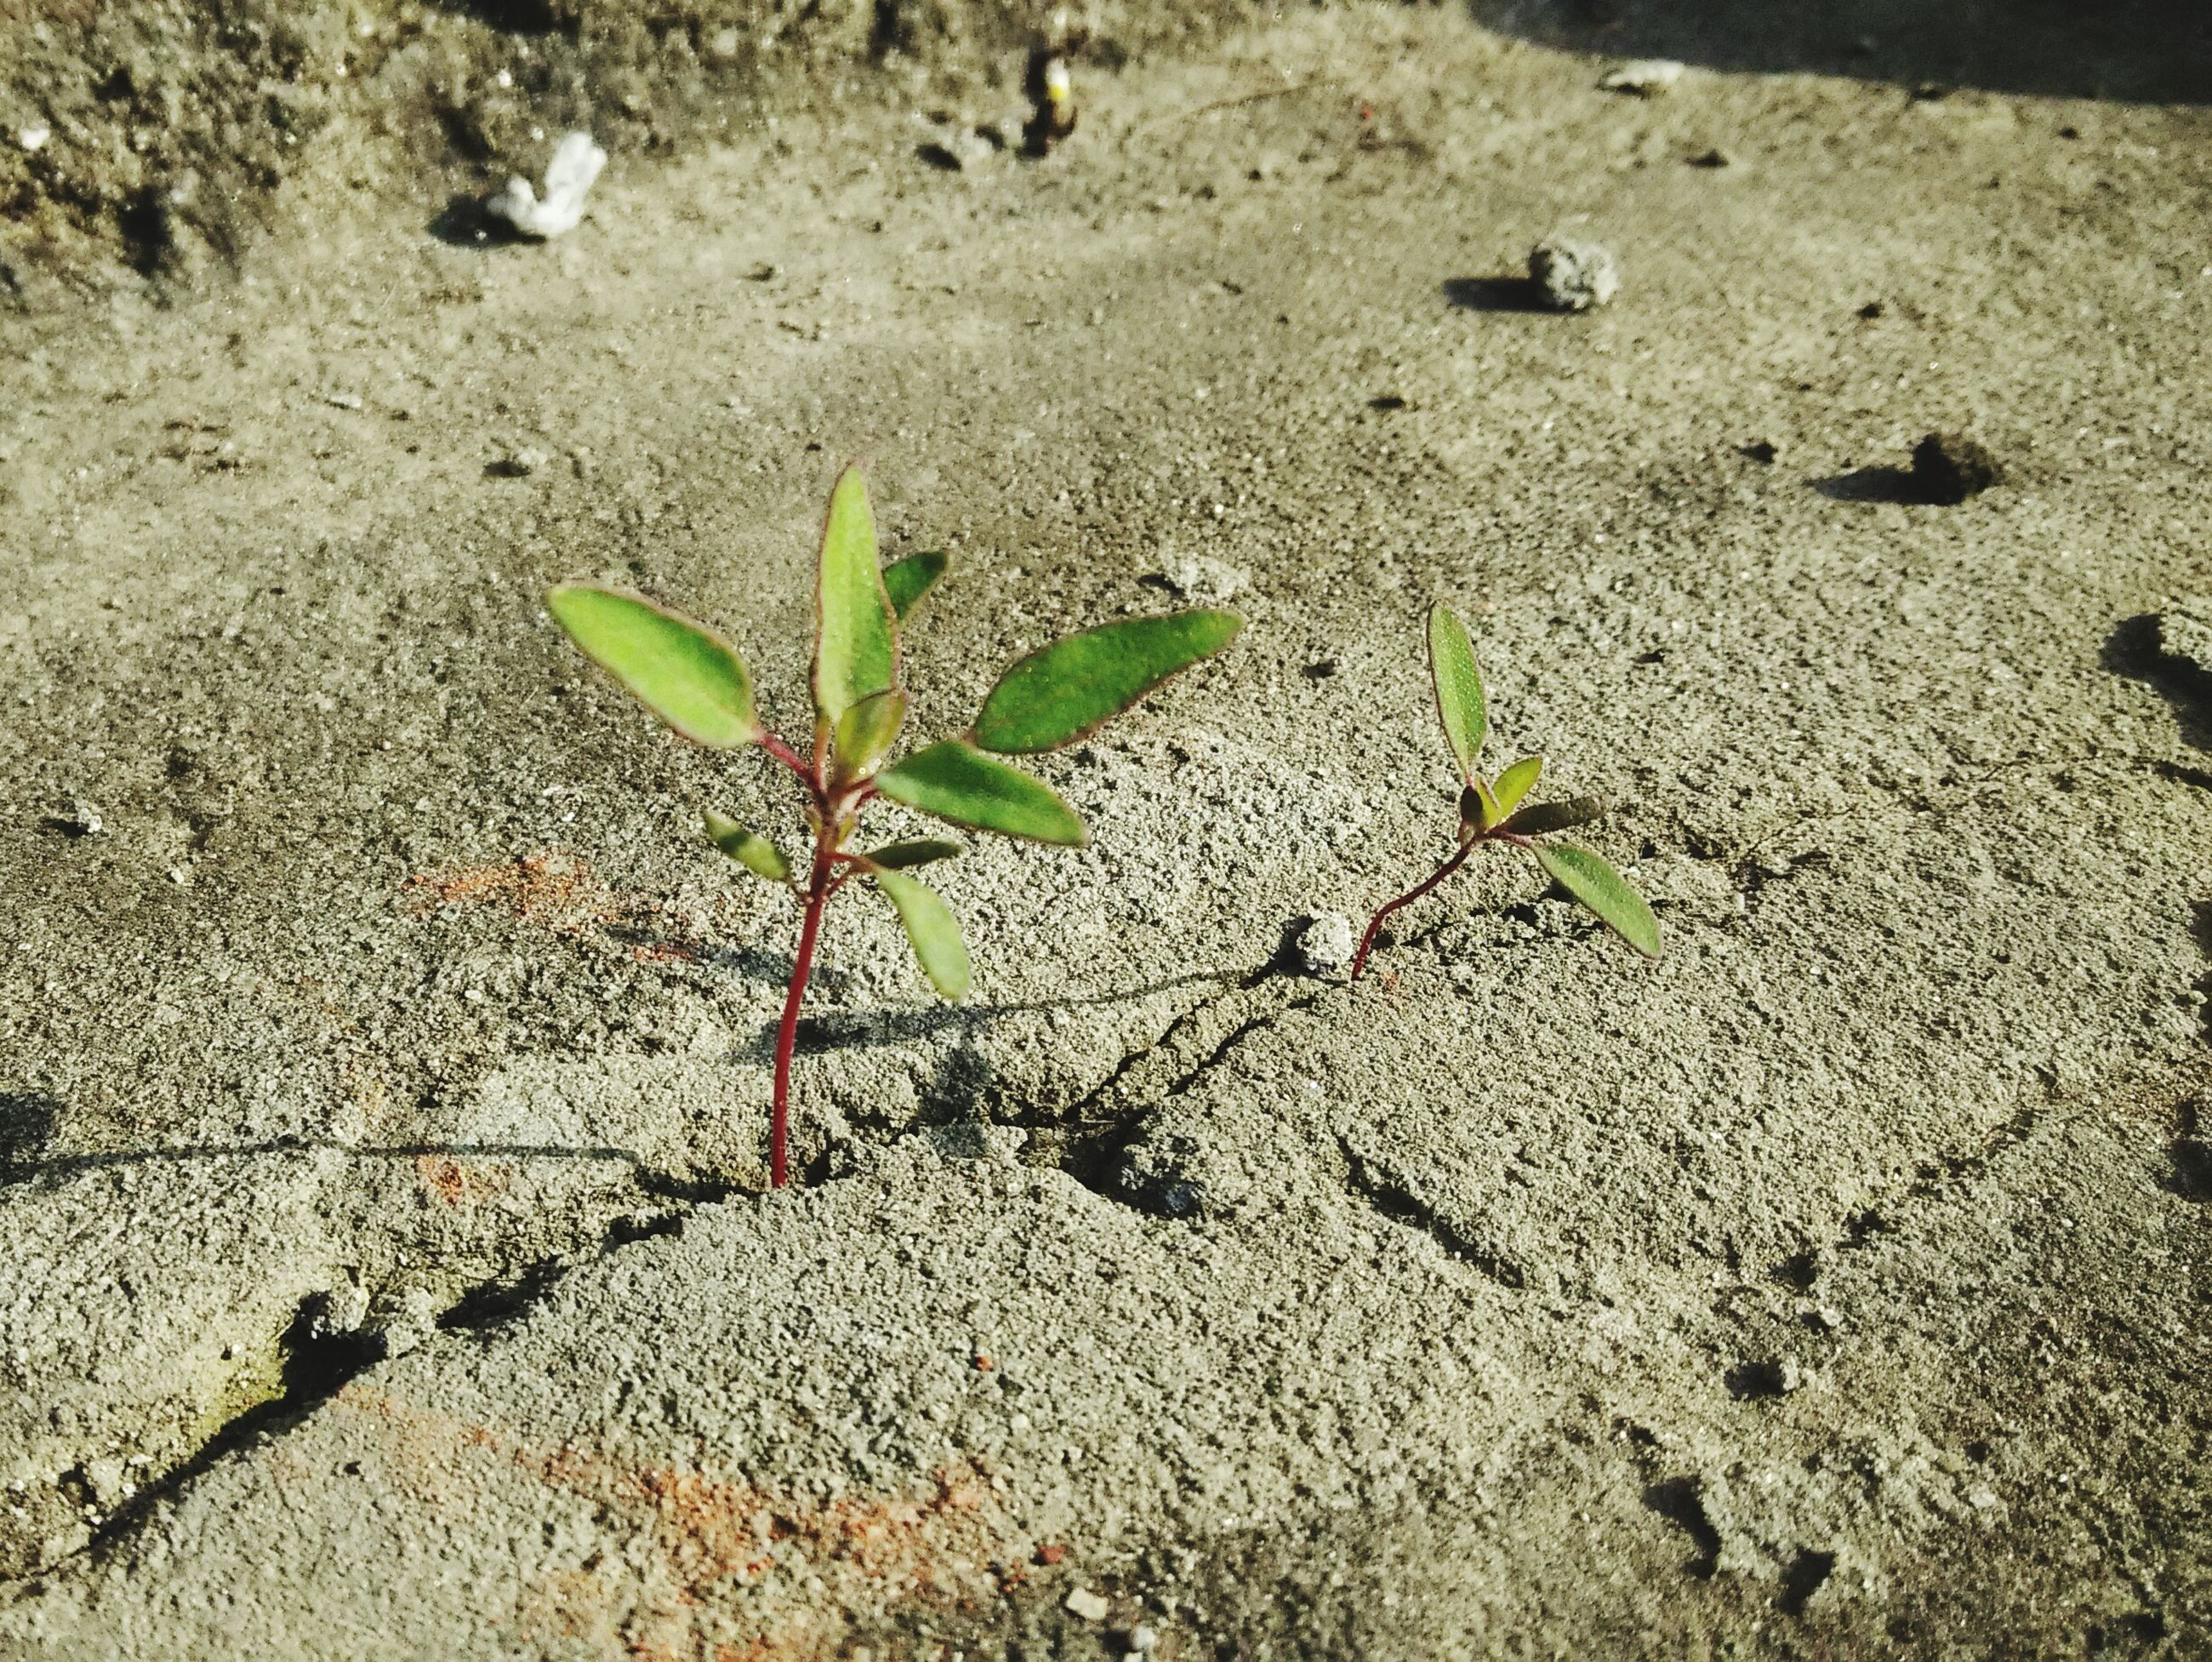 growth, leaf, plant, nature, high angle view, growing, freshness, beauty in nature, close-up, fragility, day, flower, field, outdoors, no people, tranquility, green color, sunlight, ground, beginnings